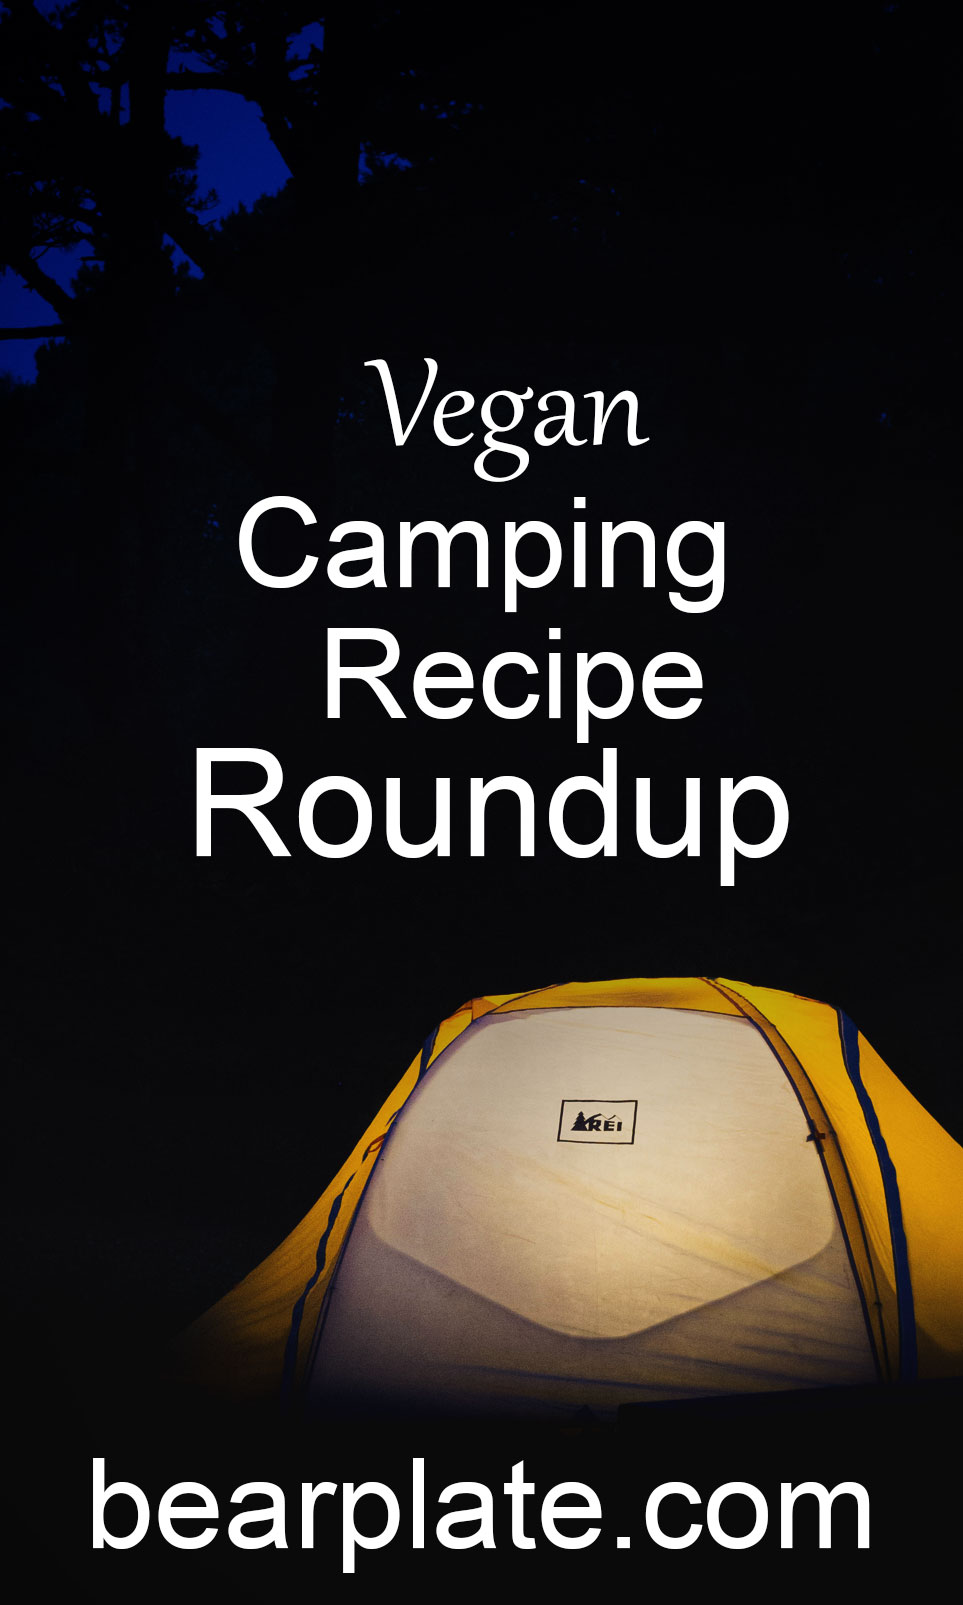 Vegan Camping Recipe Roundup!!! #vegan #plantbased #camping #recipe #food